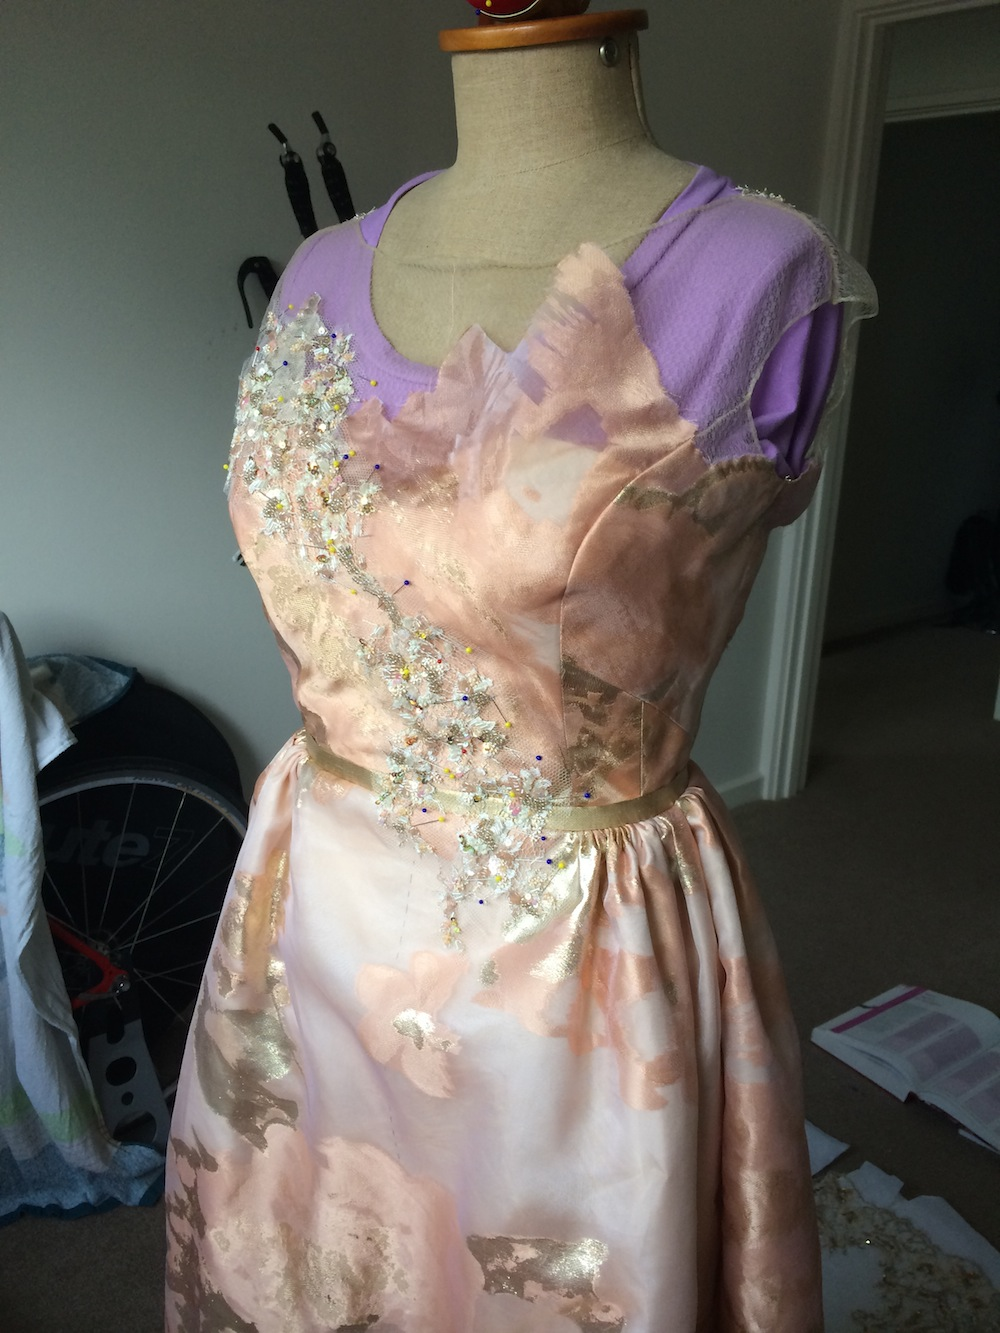 I started on the bodice and worked my way down the skirt.